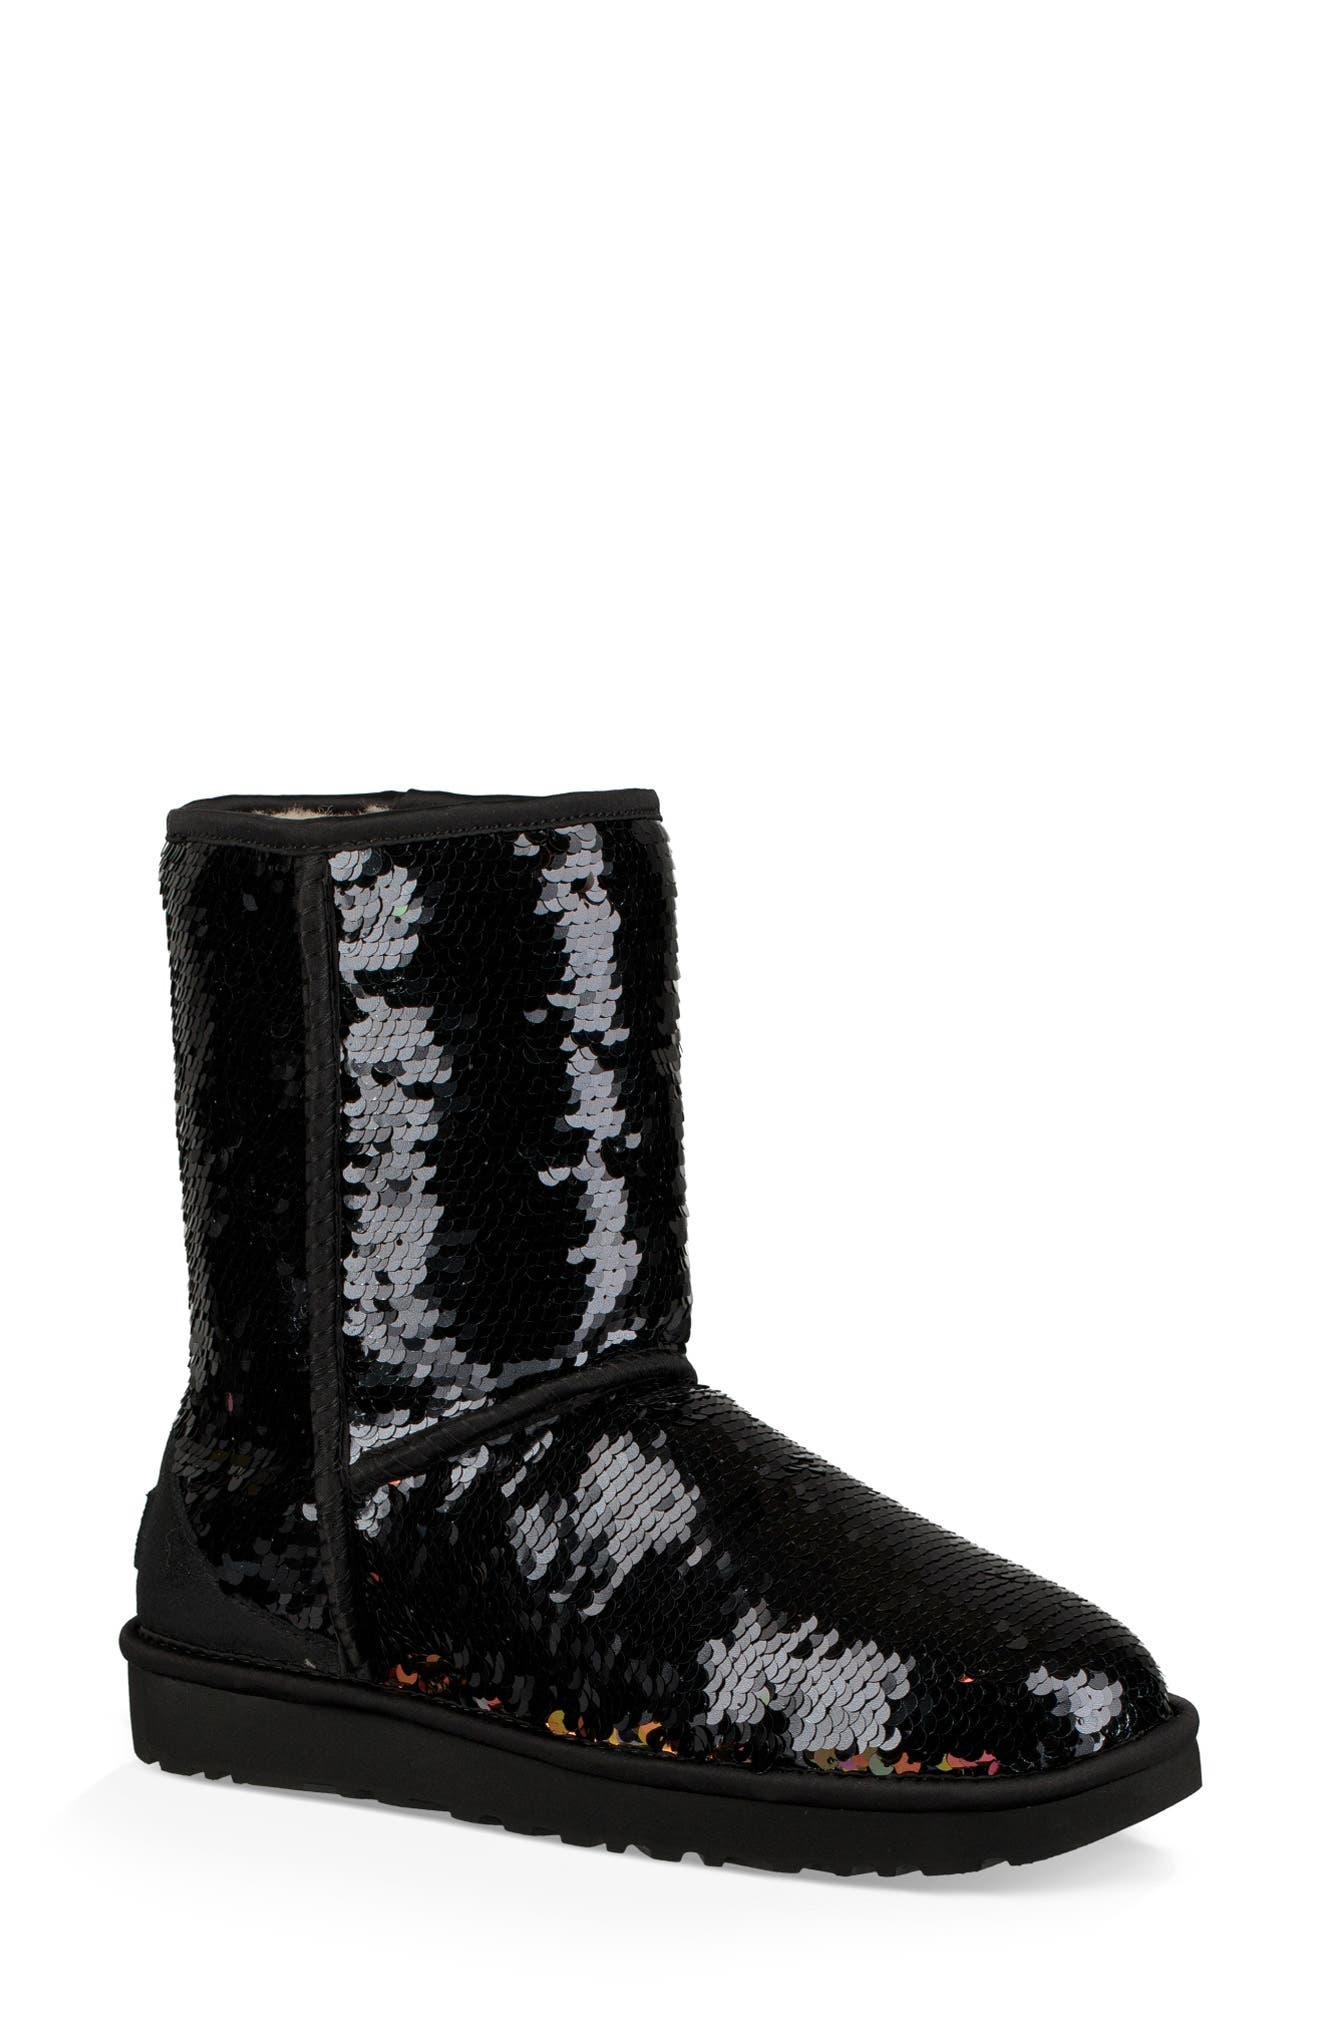 Image of UGG Classic Short Sequin Boot